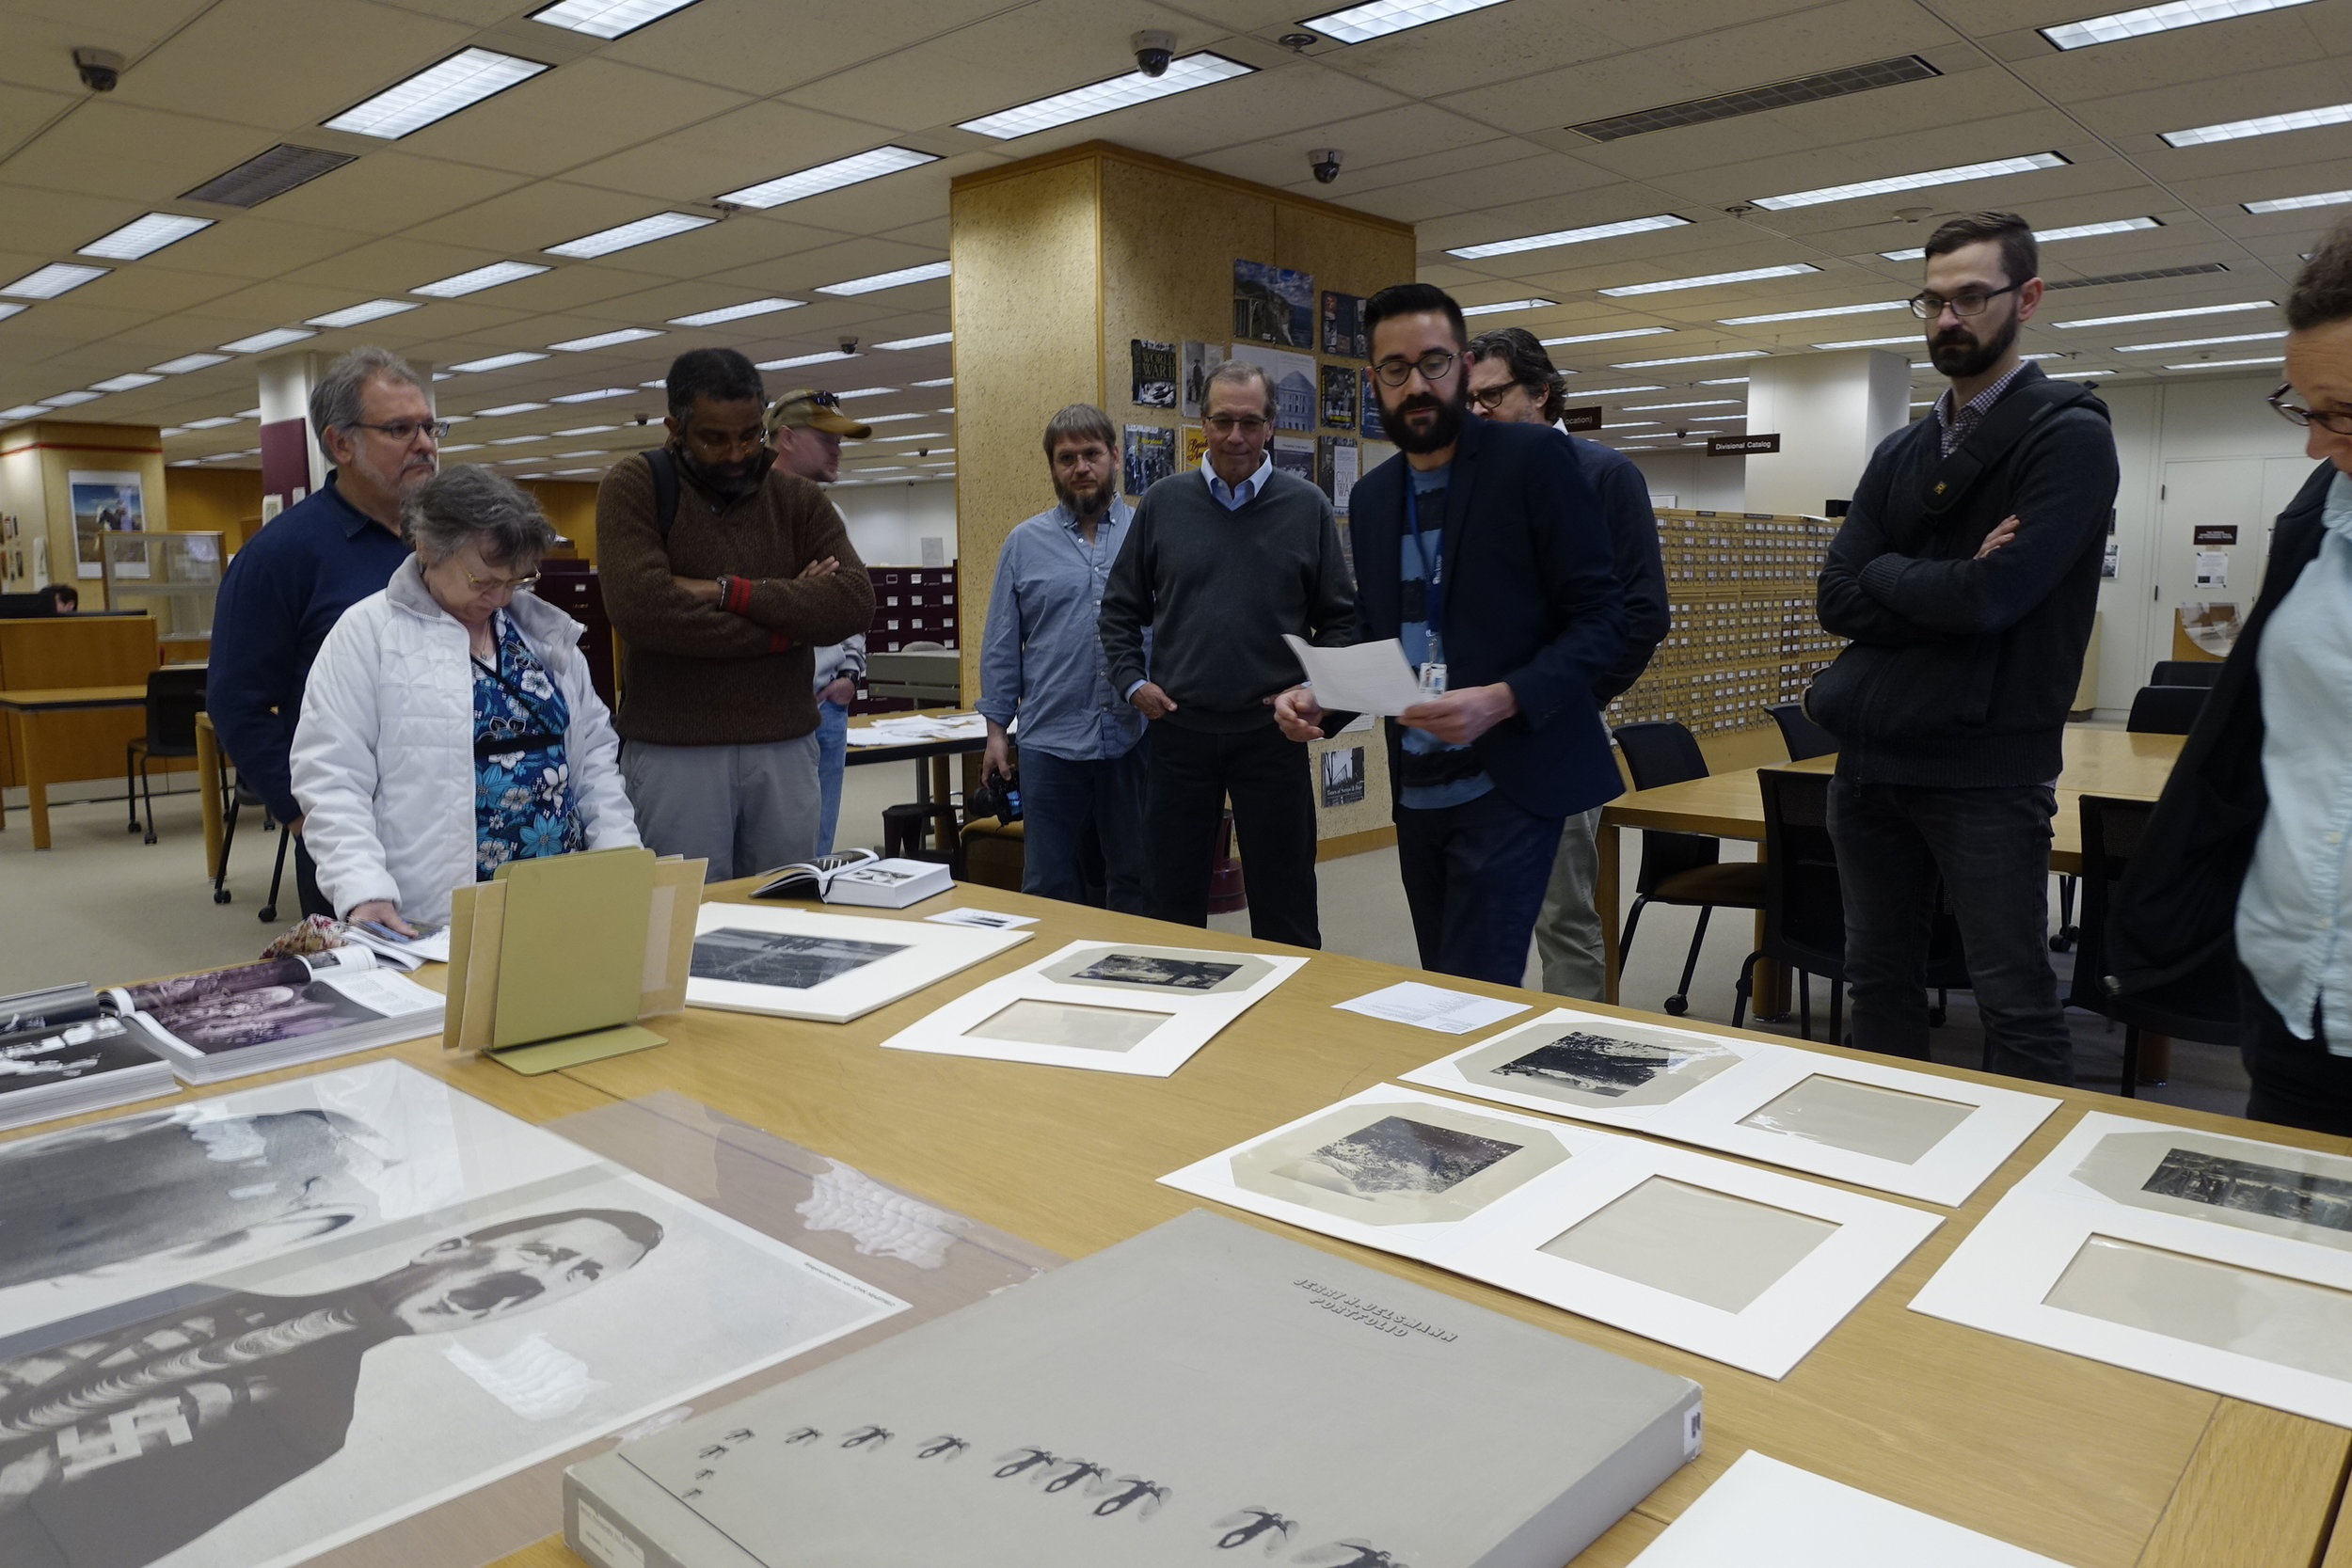 Members of the American Society of Media Photographers (ASMP), Washington DC Chapter visit the photographic reading room of the Library of Congress, Madison Building on April 7, 2017. Photos by John St Hilaire | Lightenough.com